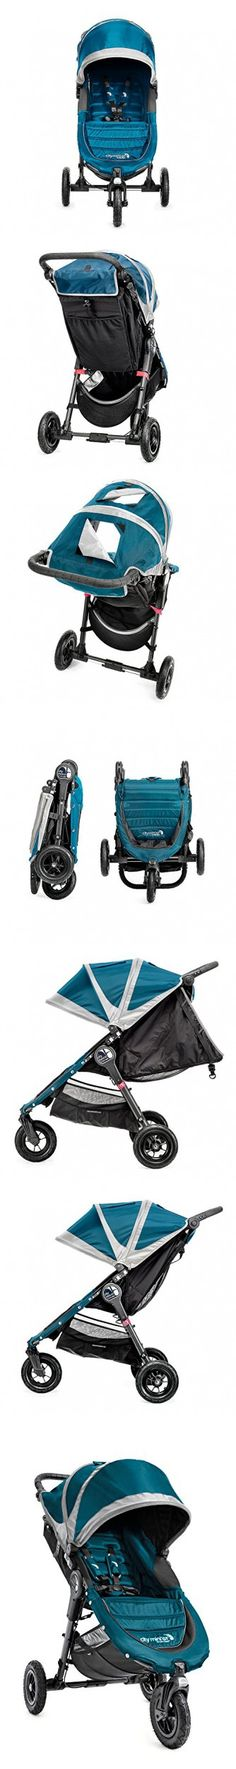 Hauck Lacrosse Shop'N Drive Travel System, Toast Toddler Stroller, Best Baby Strollers, Jogging Stroller, Double Strollers, Best Lightweight Stroller, Best Double Stroller, Single Stroller, City Mini Gt, Chairs